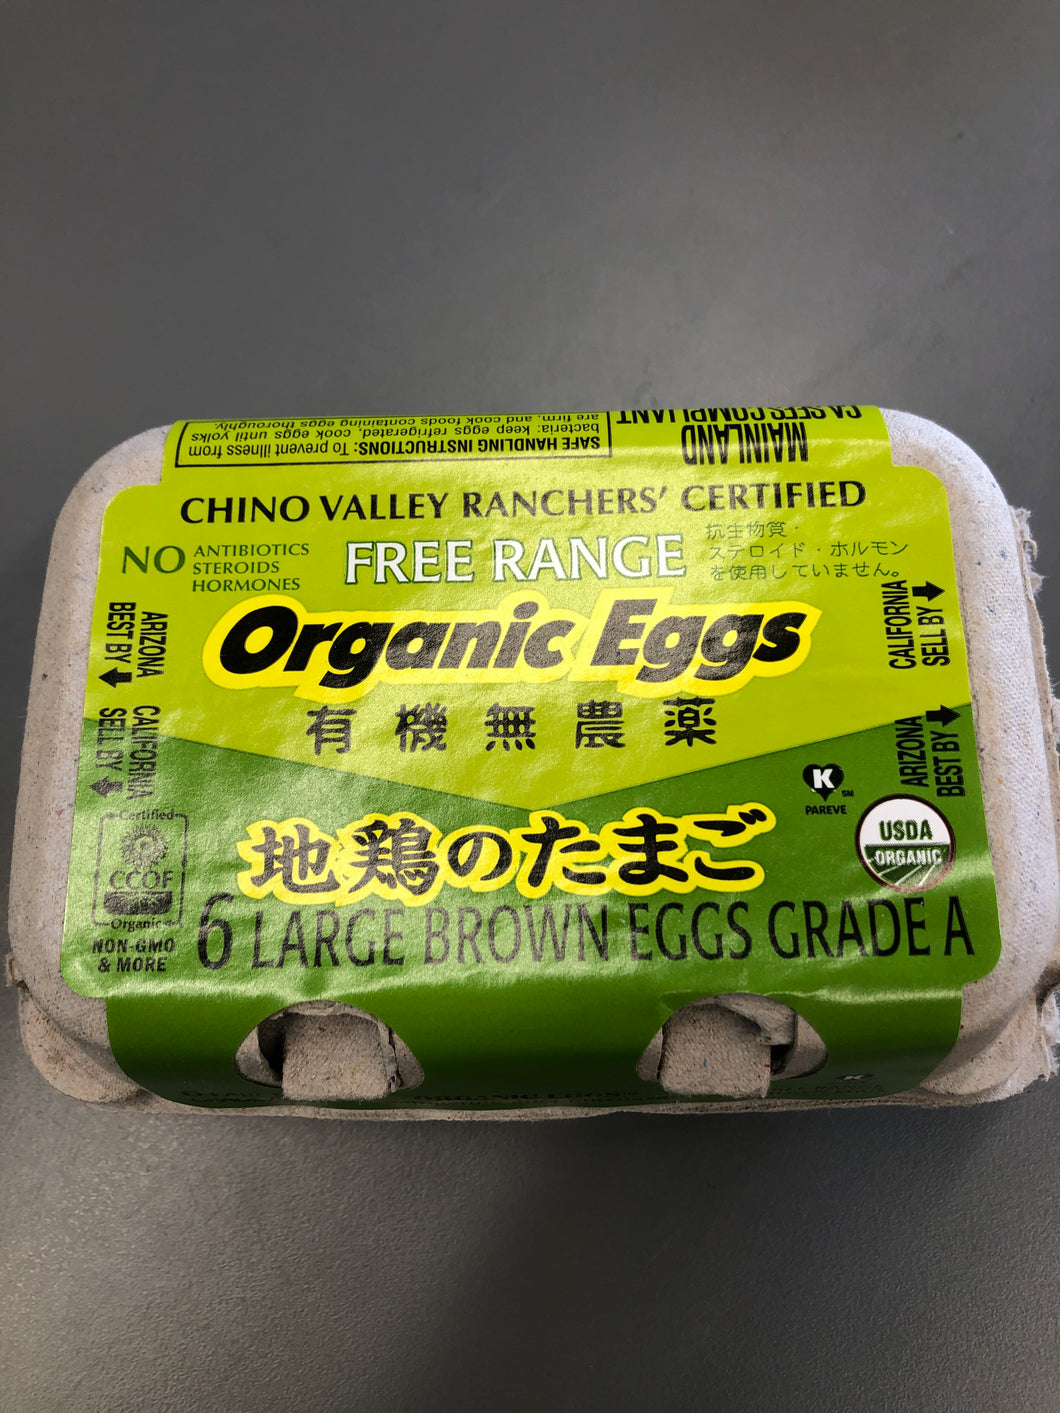 FRESH TAMAGO ORGANIC 6PC